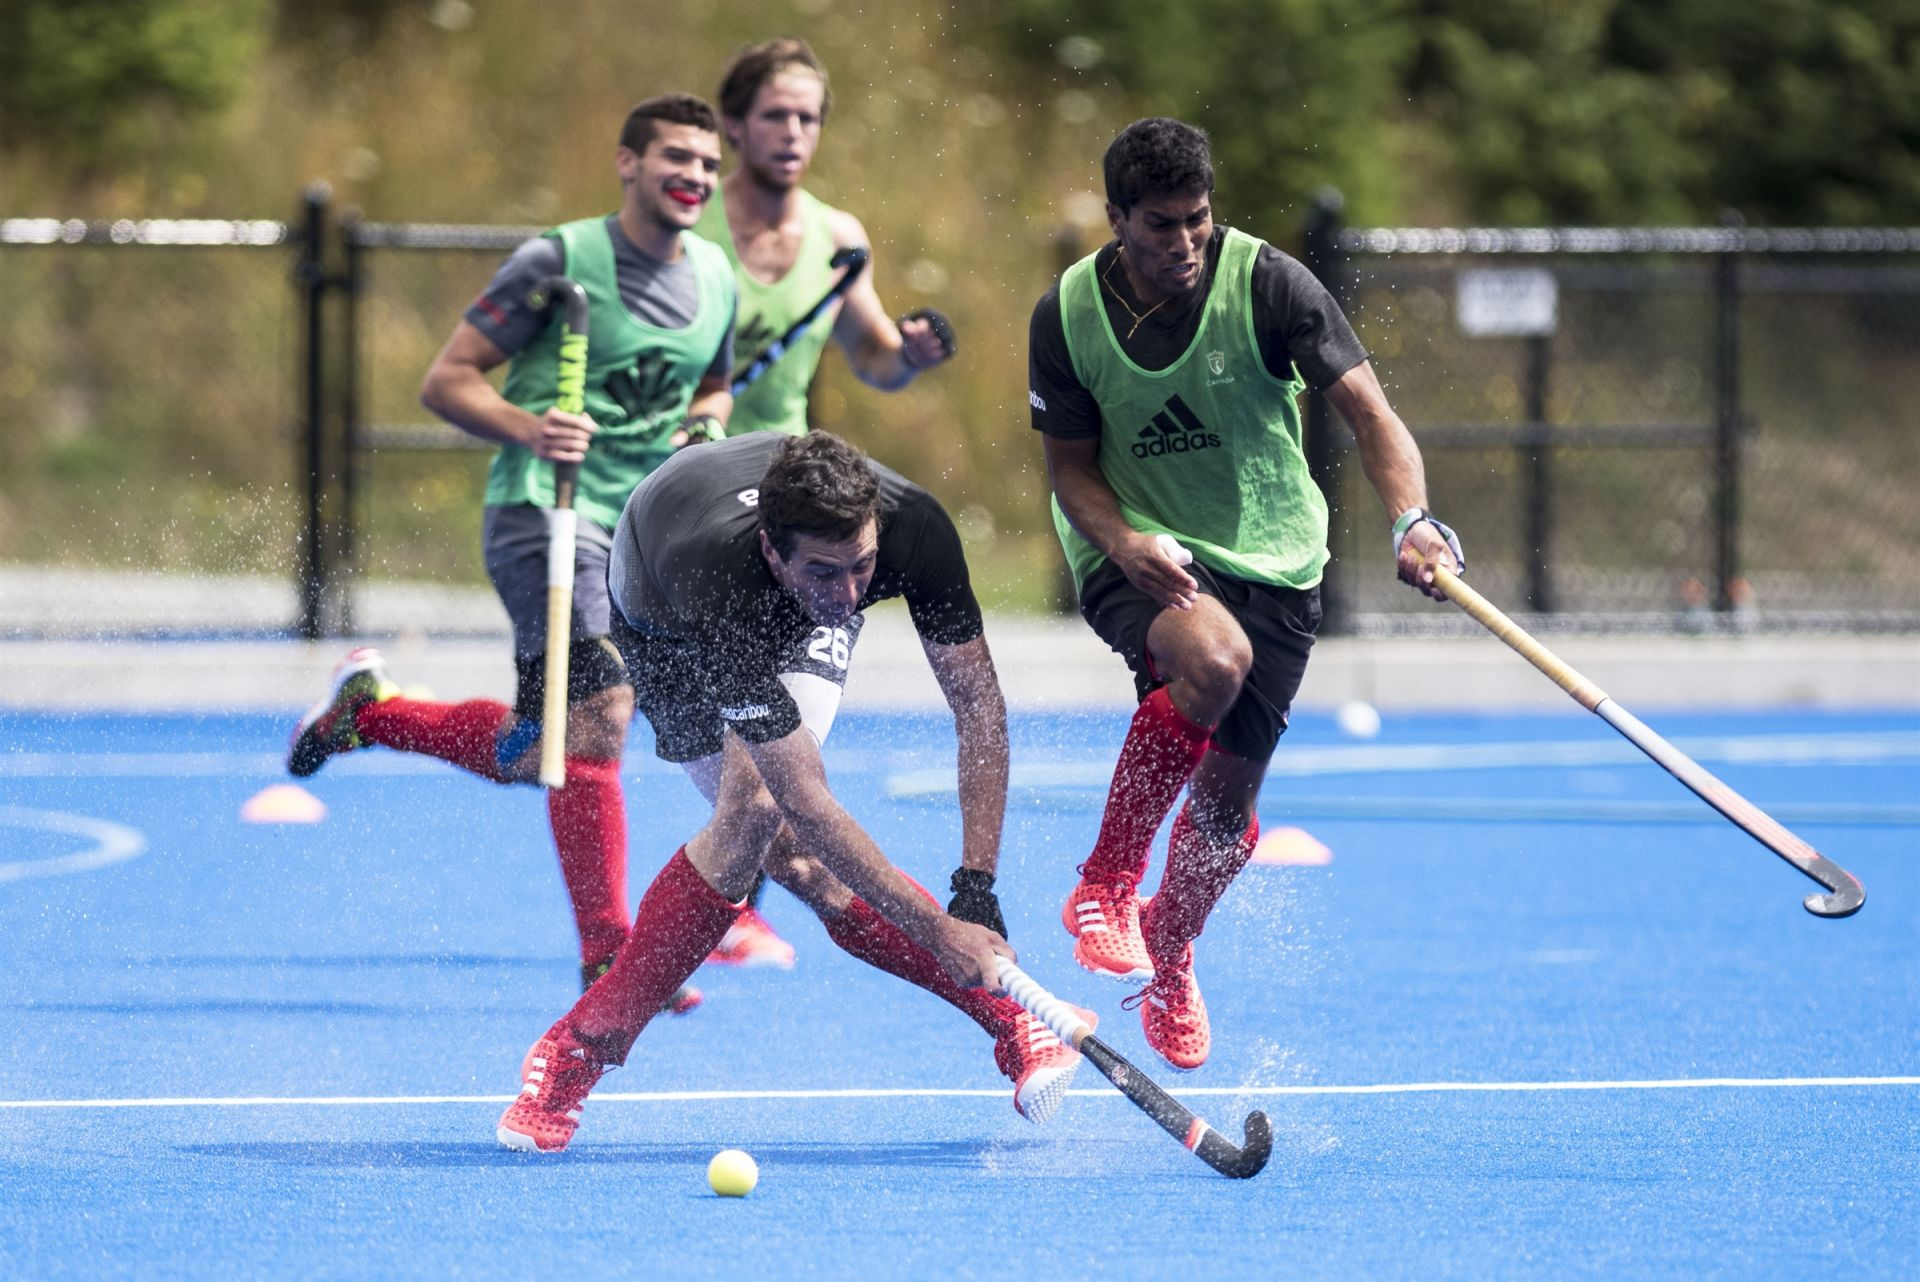 Field Hockey Canada Men